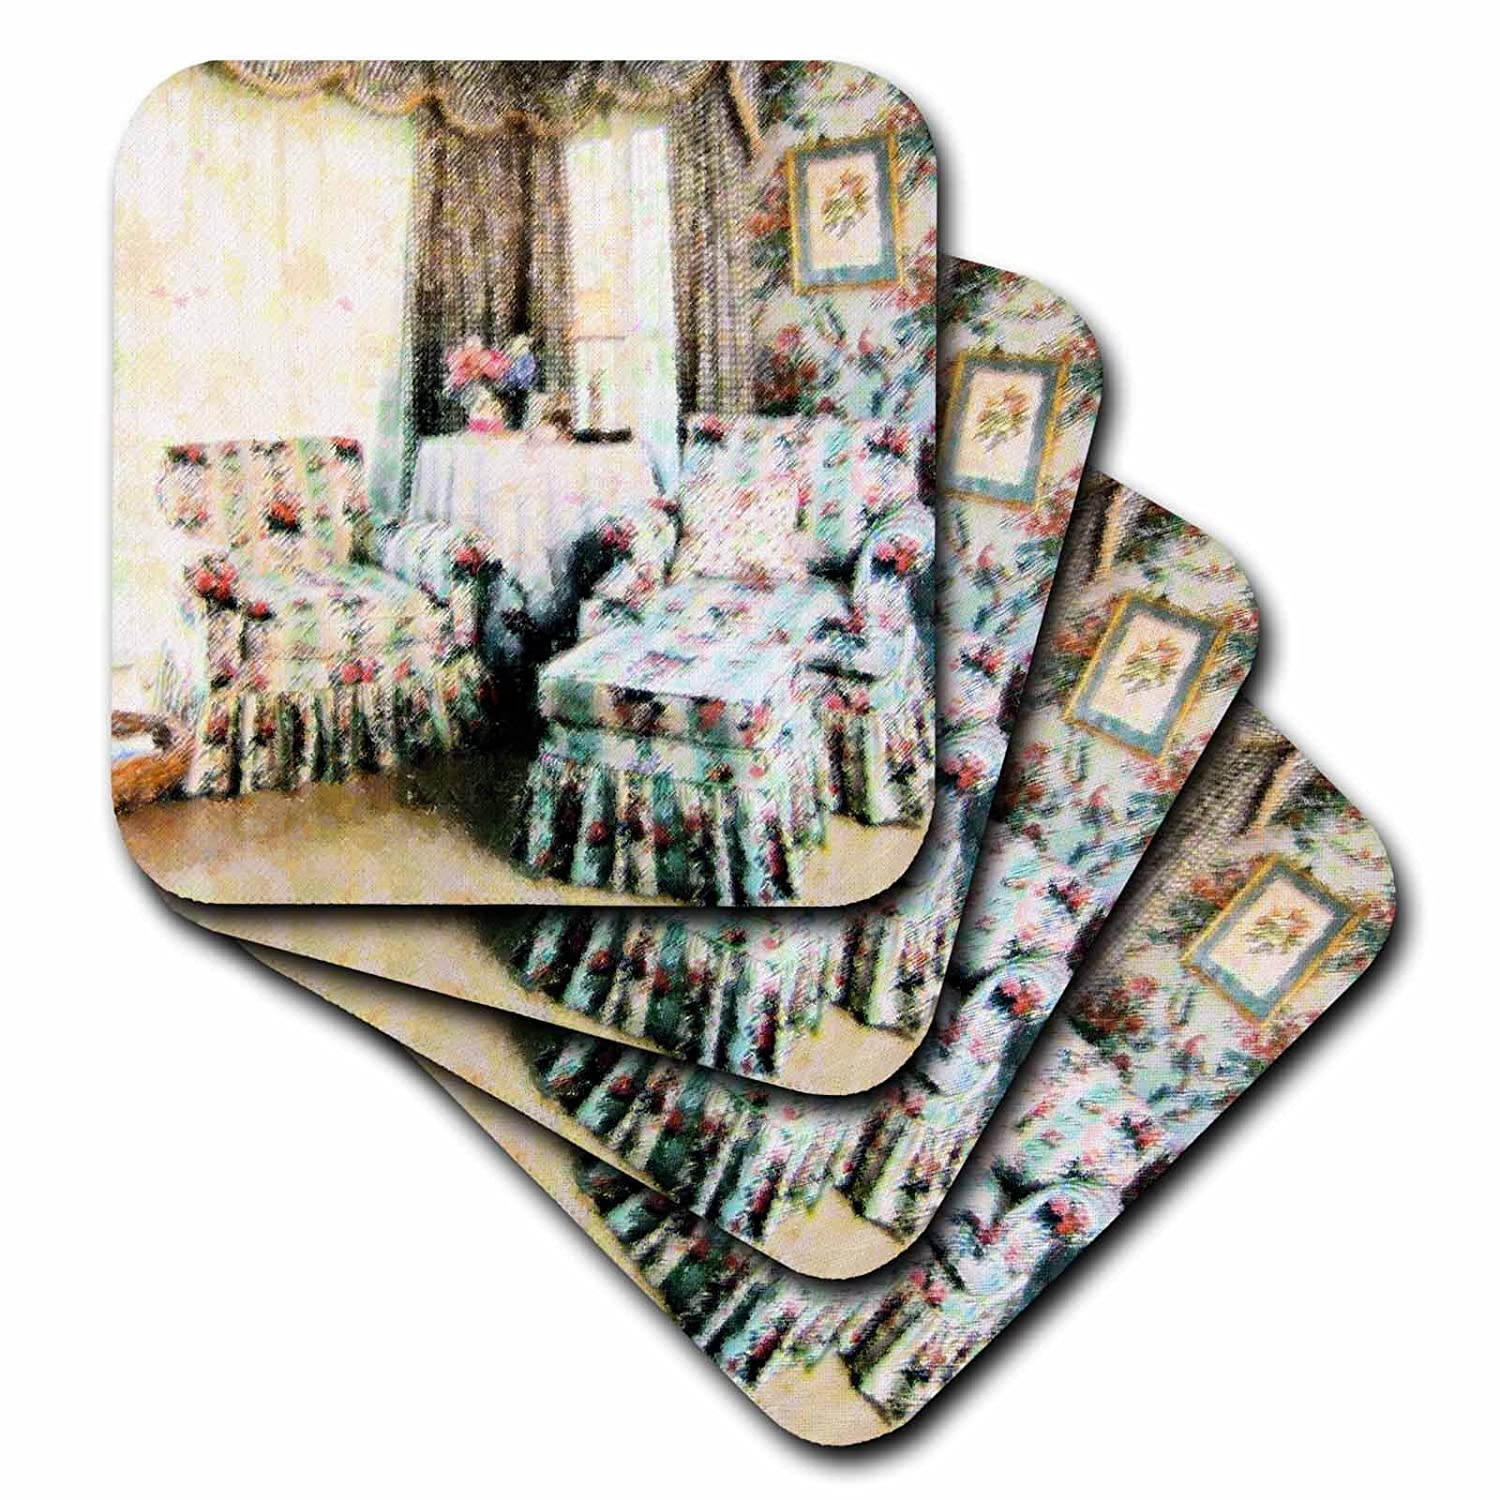 Set of 4 3dRose cst/_21040/_3 My Country Room Ceramic Tile Coasters